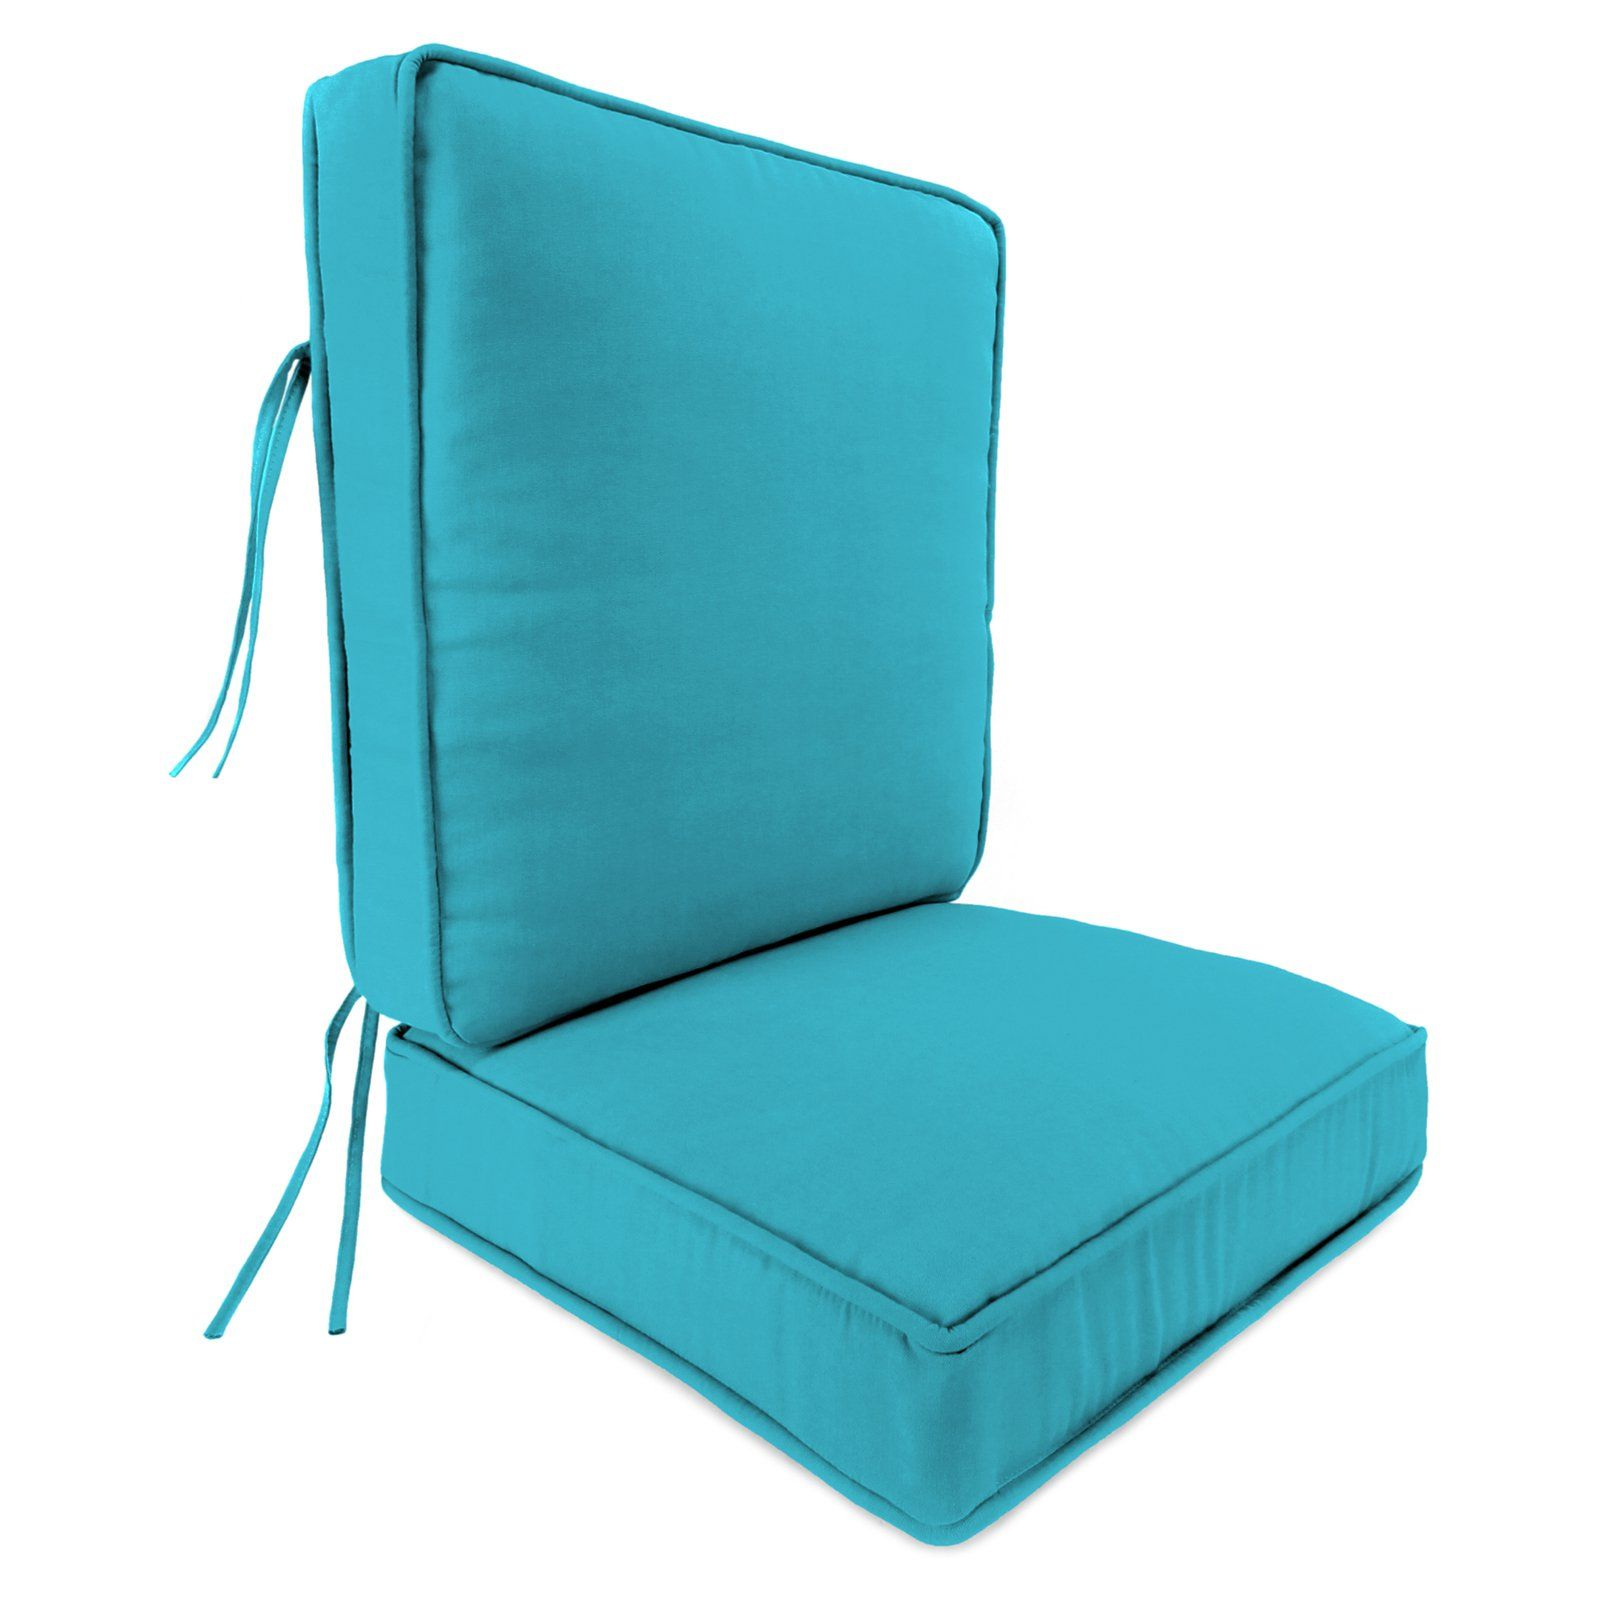 Jordan Manufacturing 24 X 22 5 In Outdoor Boxed Cushion With